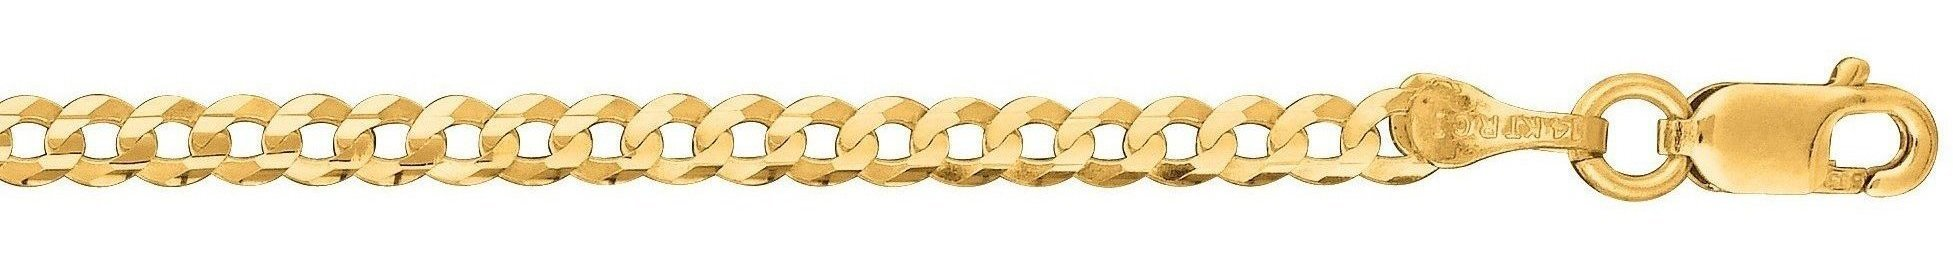 "20"" 14K Yellow Gold 2.6mm (1/10"") Polished Diamond Cut Comfort Curb Chain w/ Lobster Clasp"